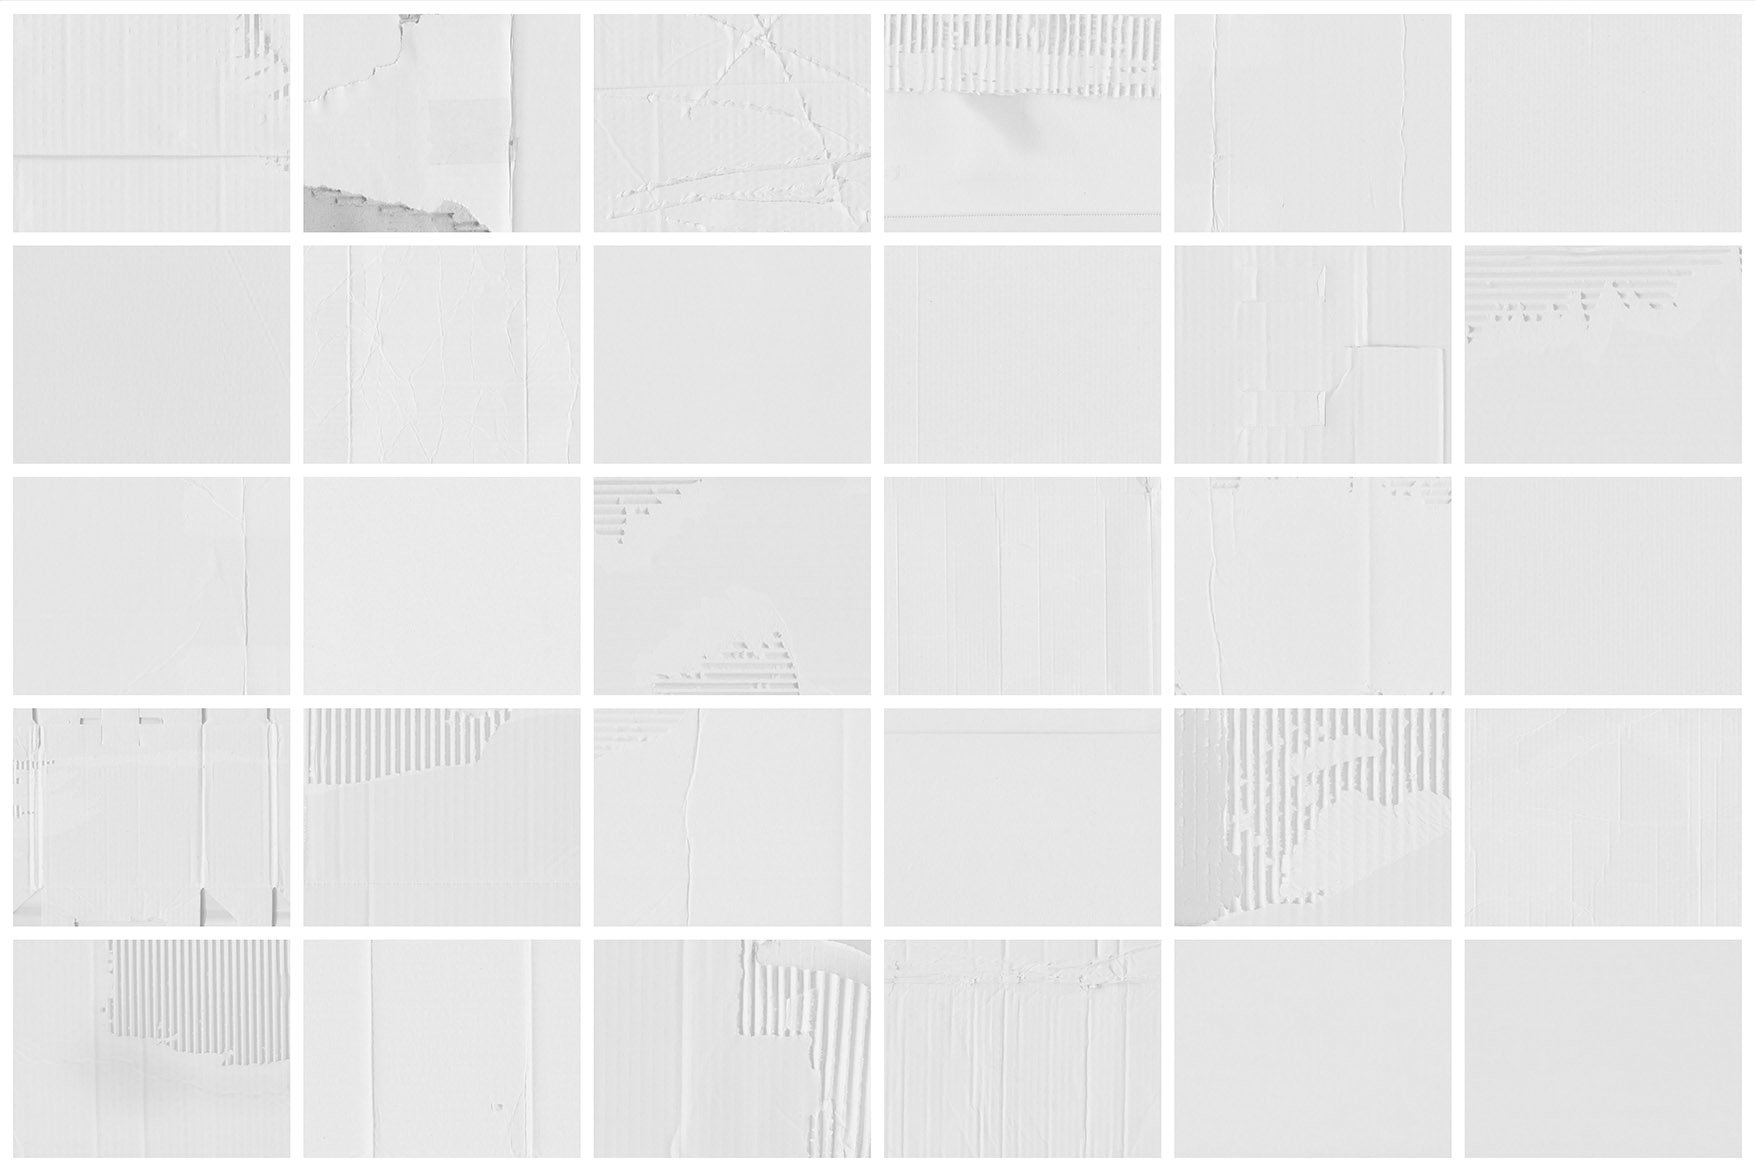 White Cardboard Textures 1 example image 8